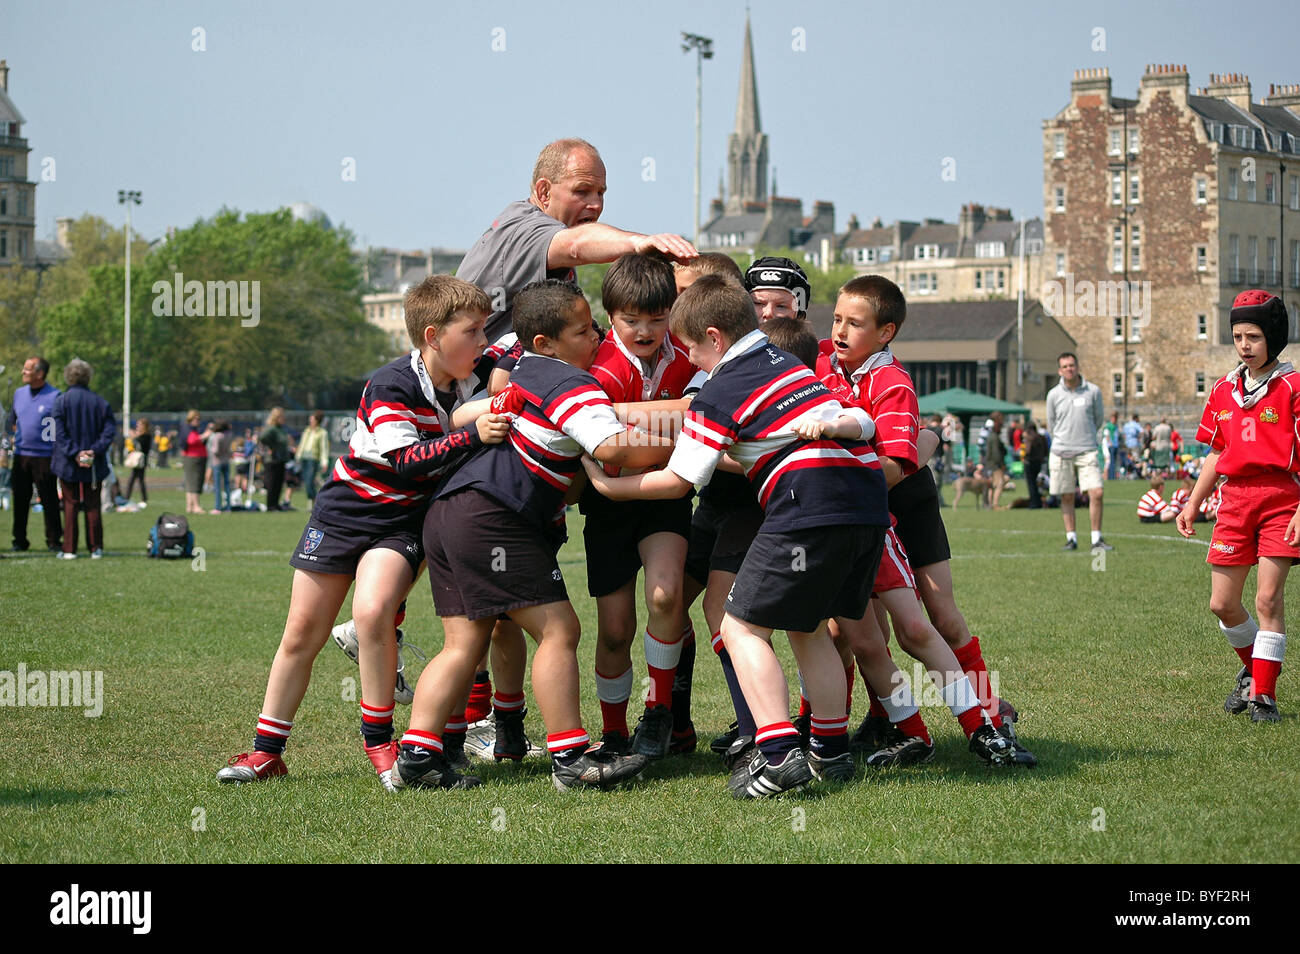 Primary school children playing in a rugby tournament at Bath, UK - Stock Image